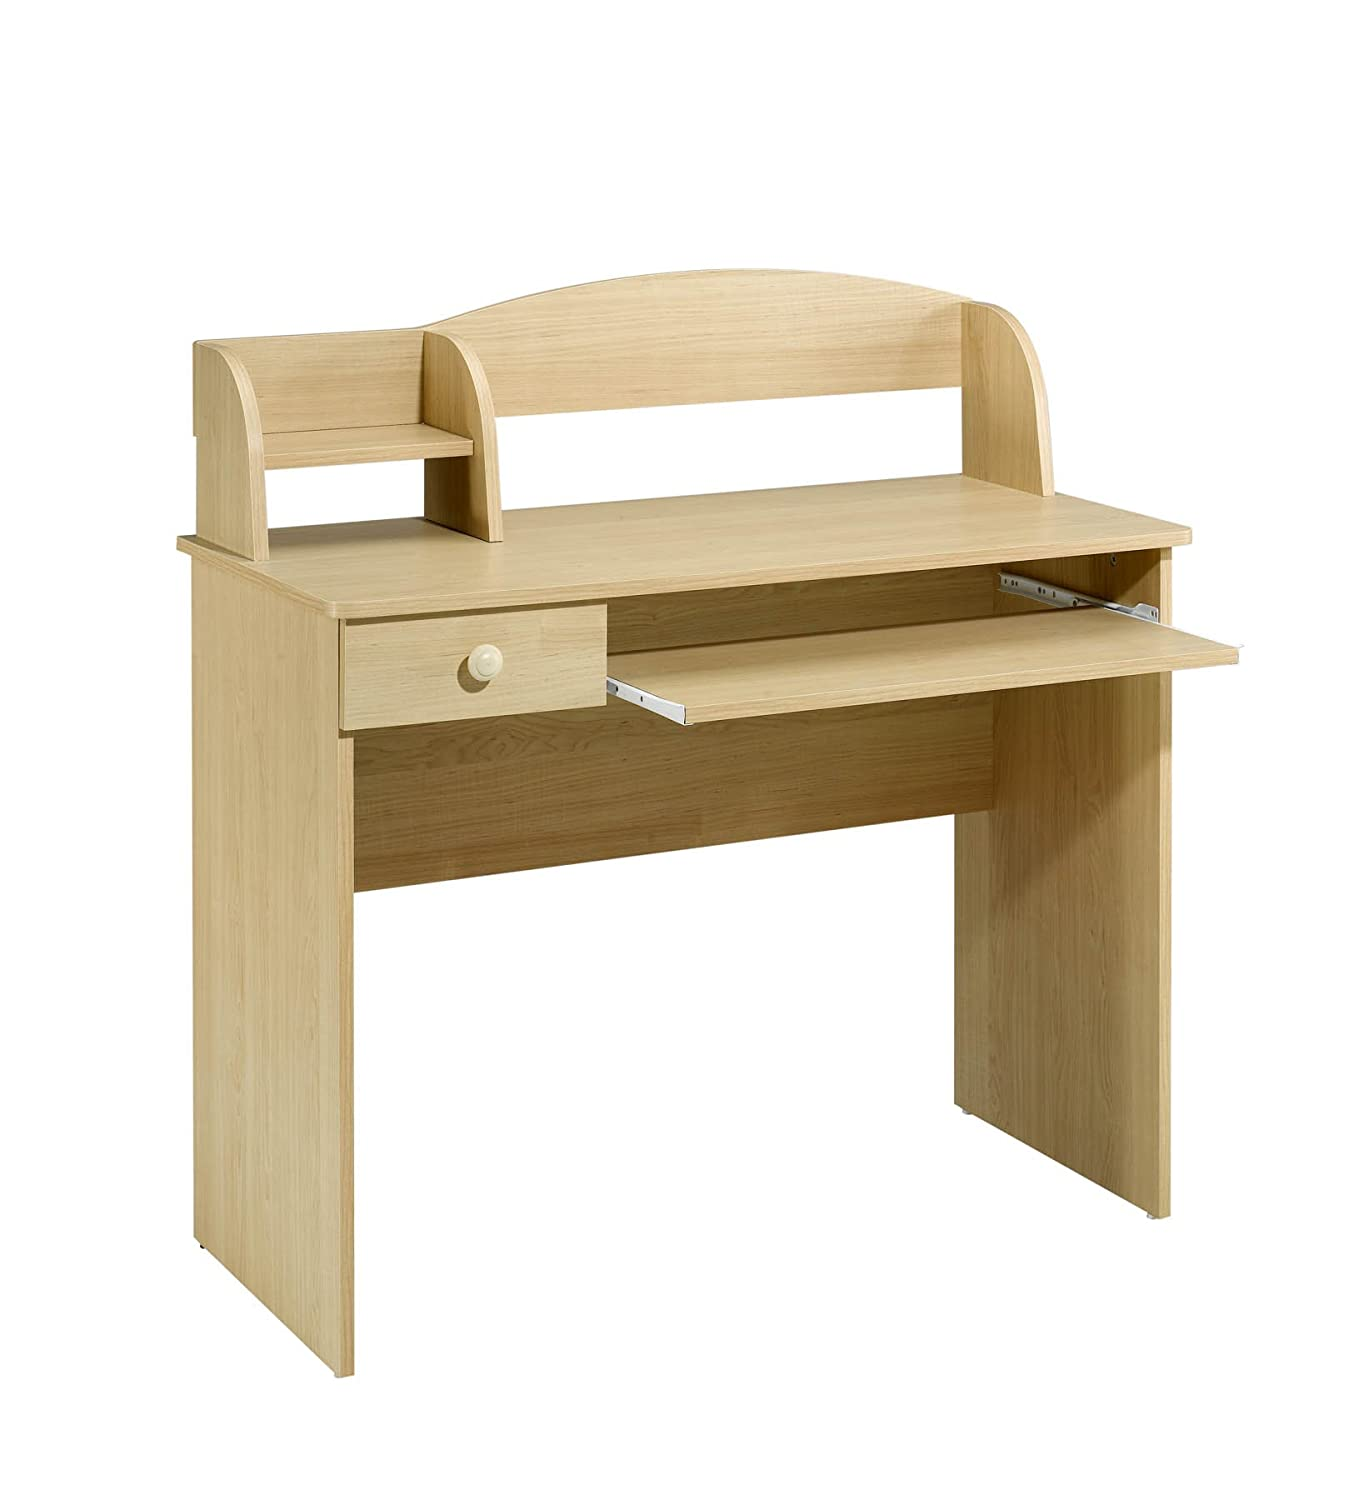 writing jeanneret pierre student for buildings x by chandigarh desk desks education in